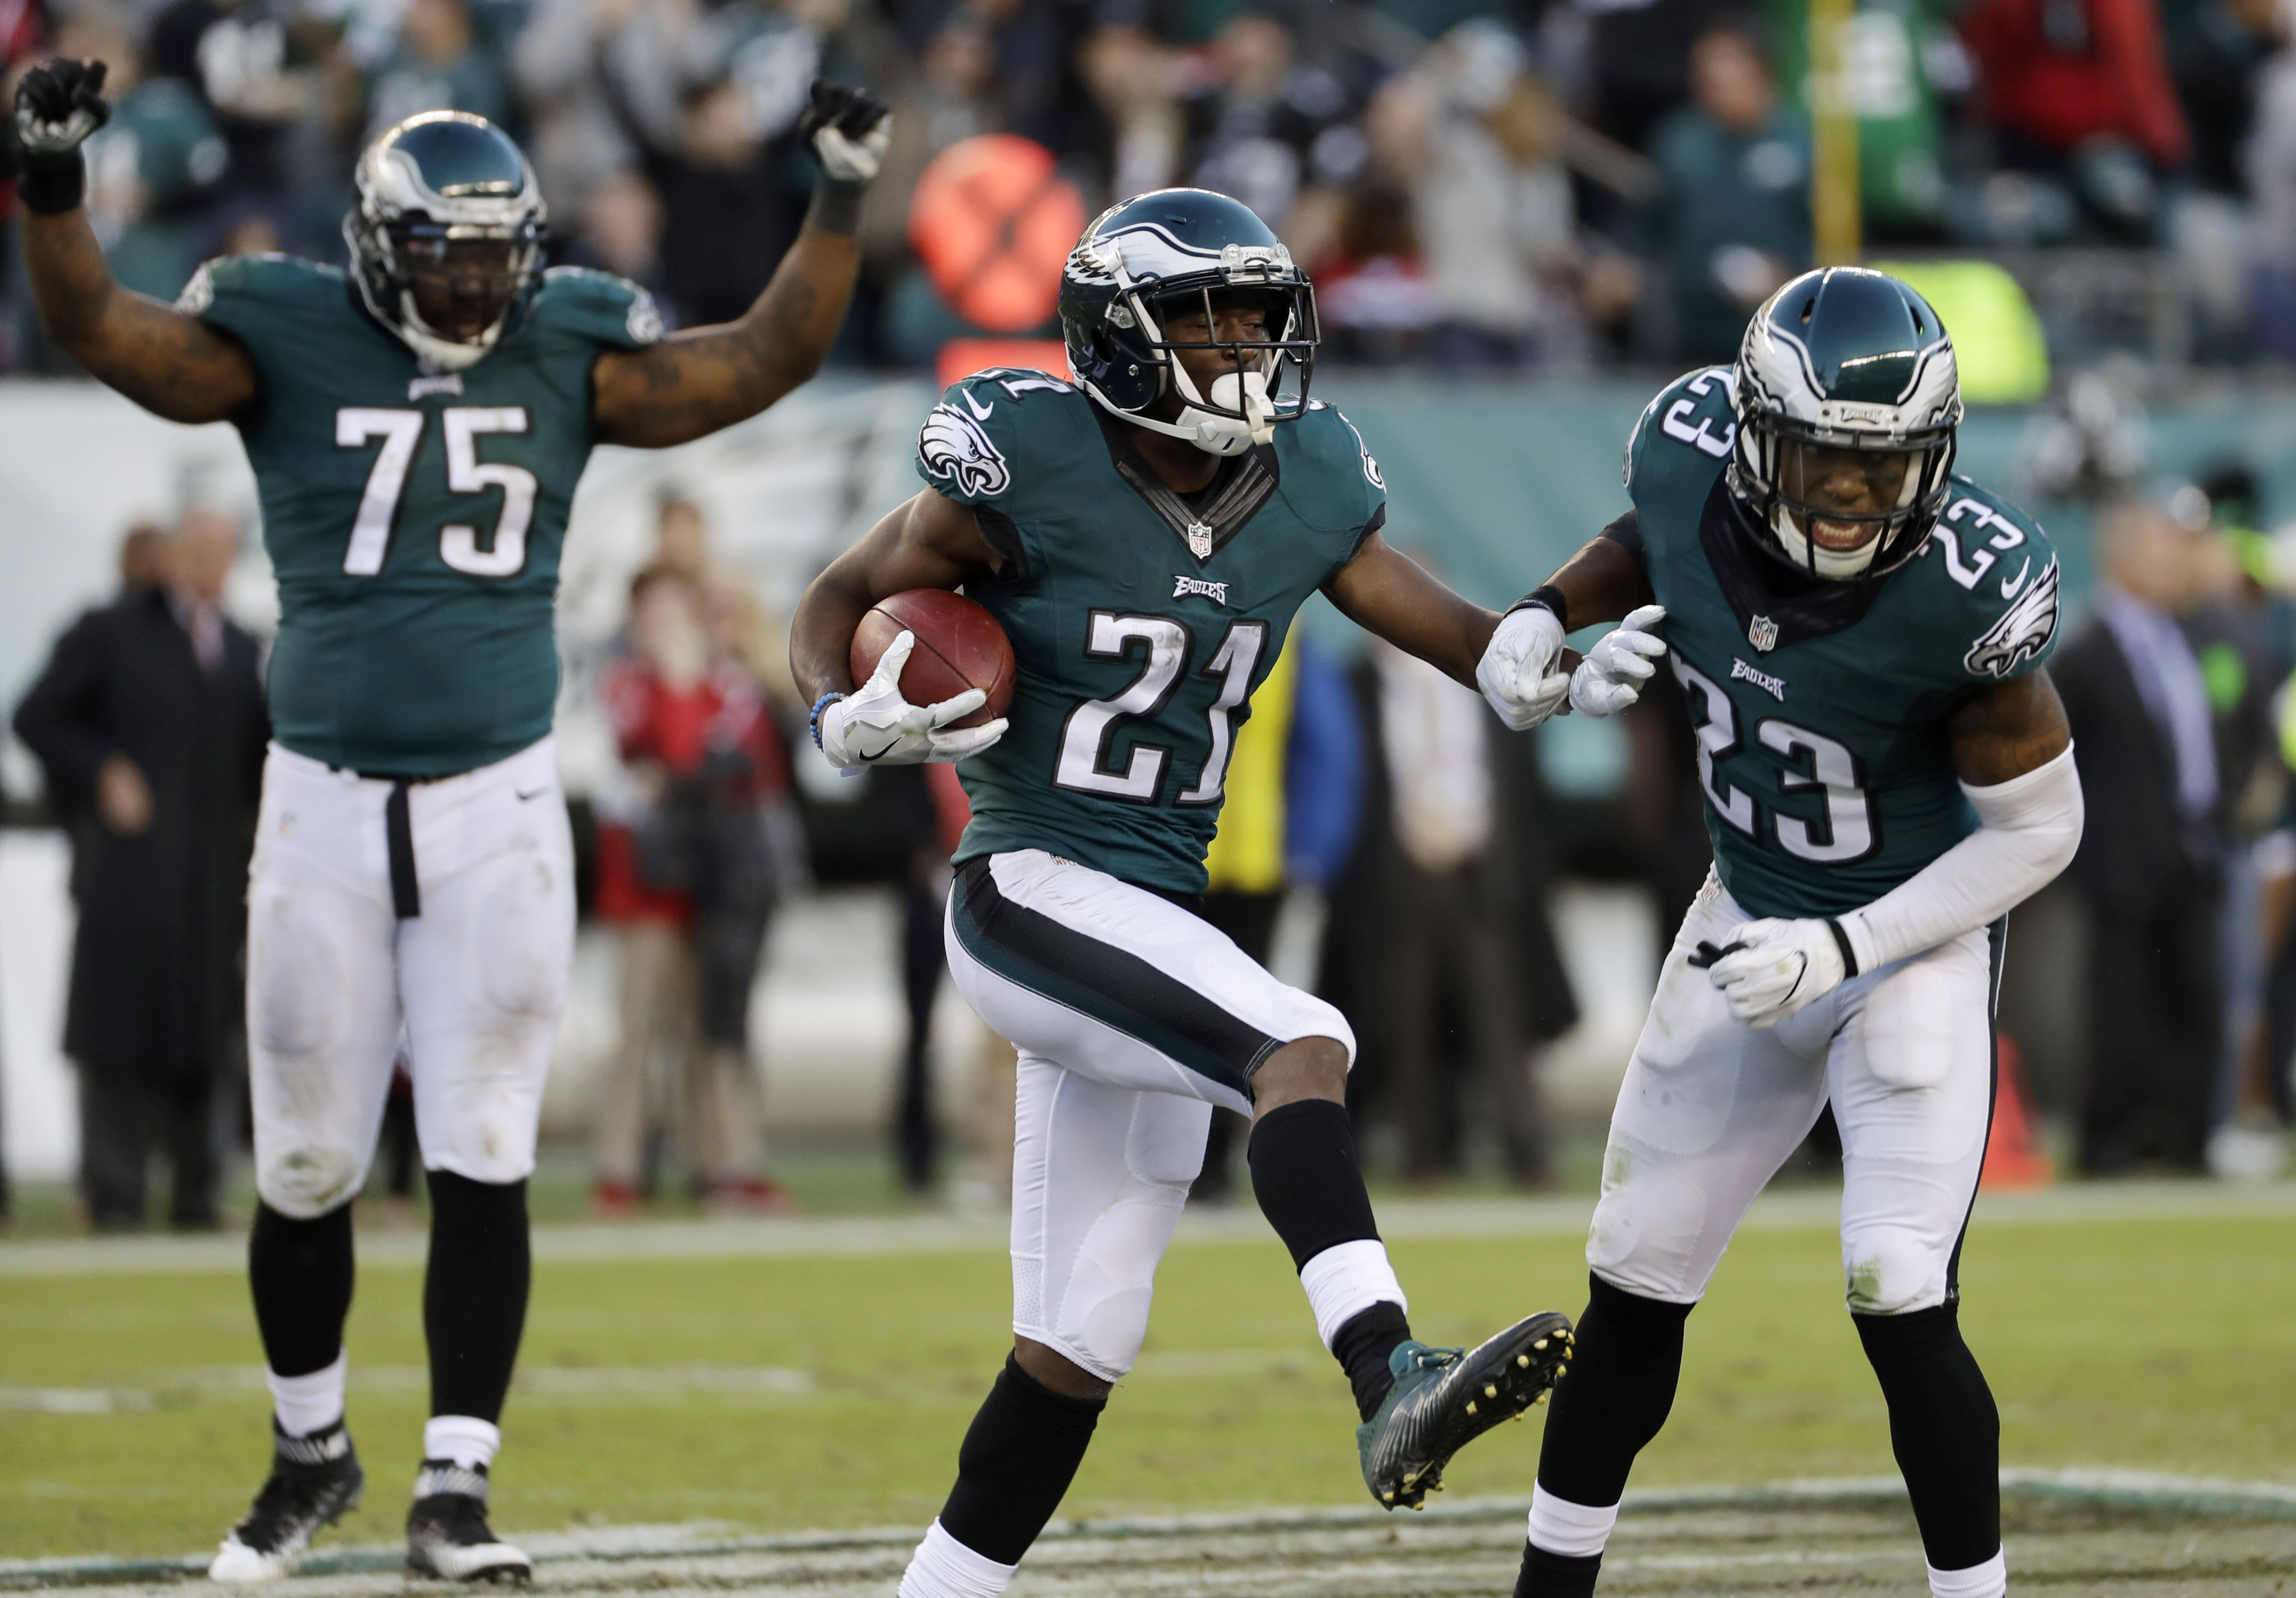 Philadelphia Eagles' Leodis McKelvin, center, celebrates an interception with Rodney McLeod, right, and Vinny Curry during the second half of an NFL football game against the Atlanta Falcons, Sunday, Nov. 13, 2016, in Philadelphia. (AP Photo/Michael Perez